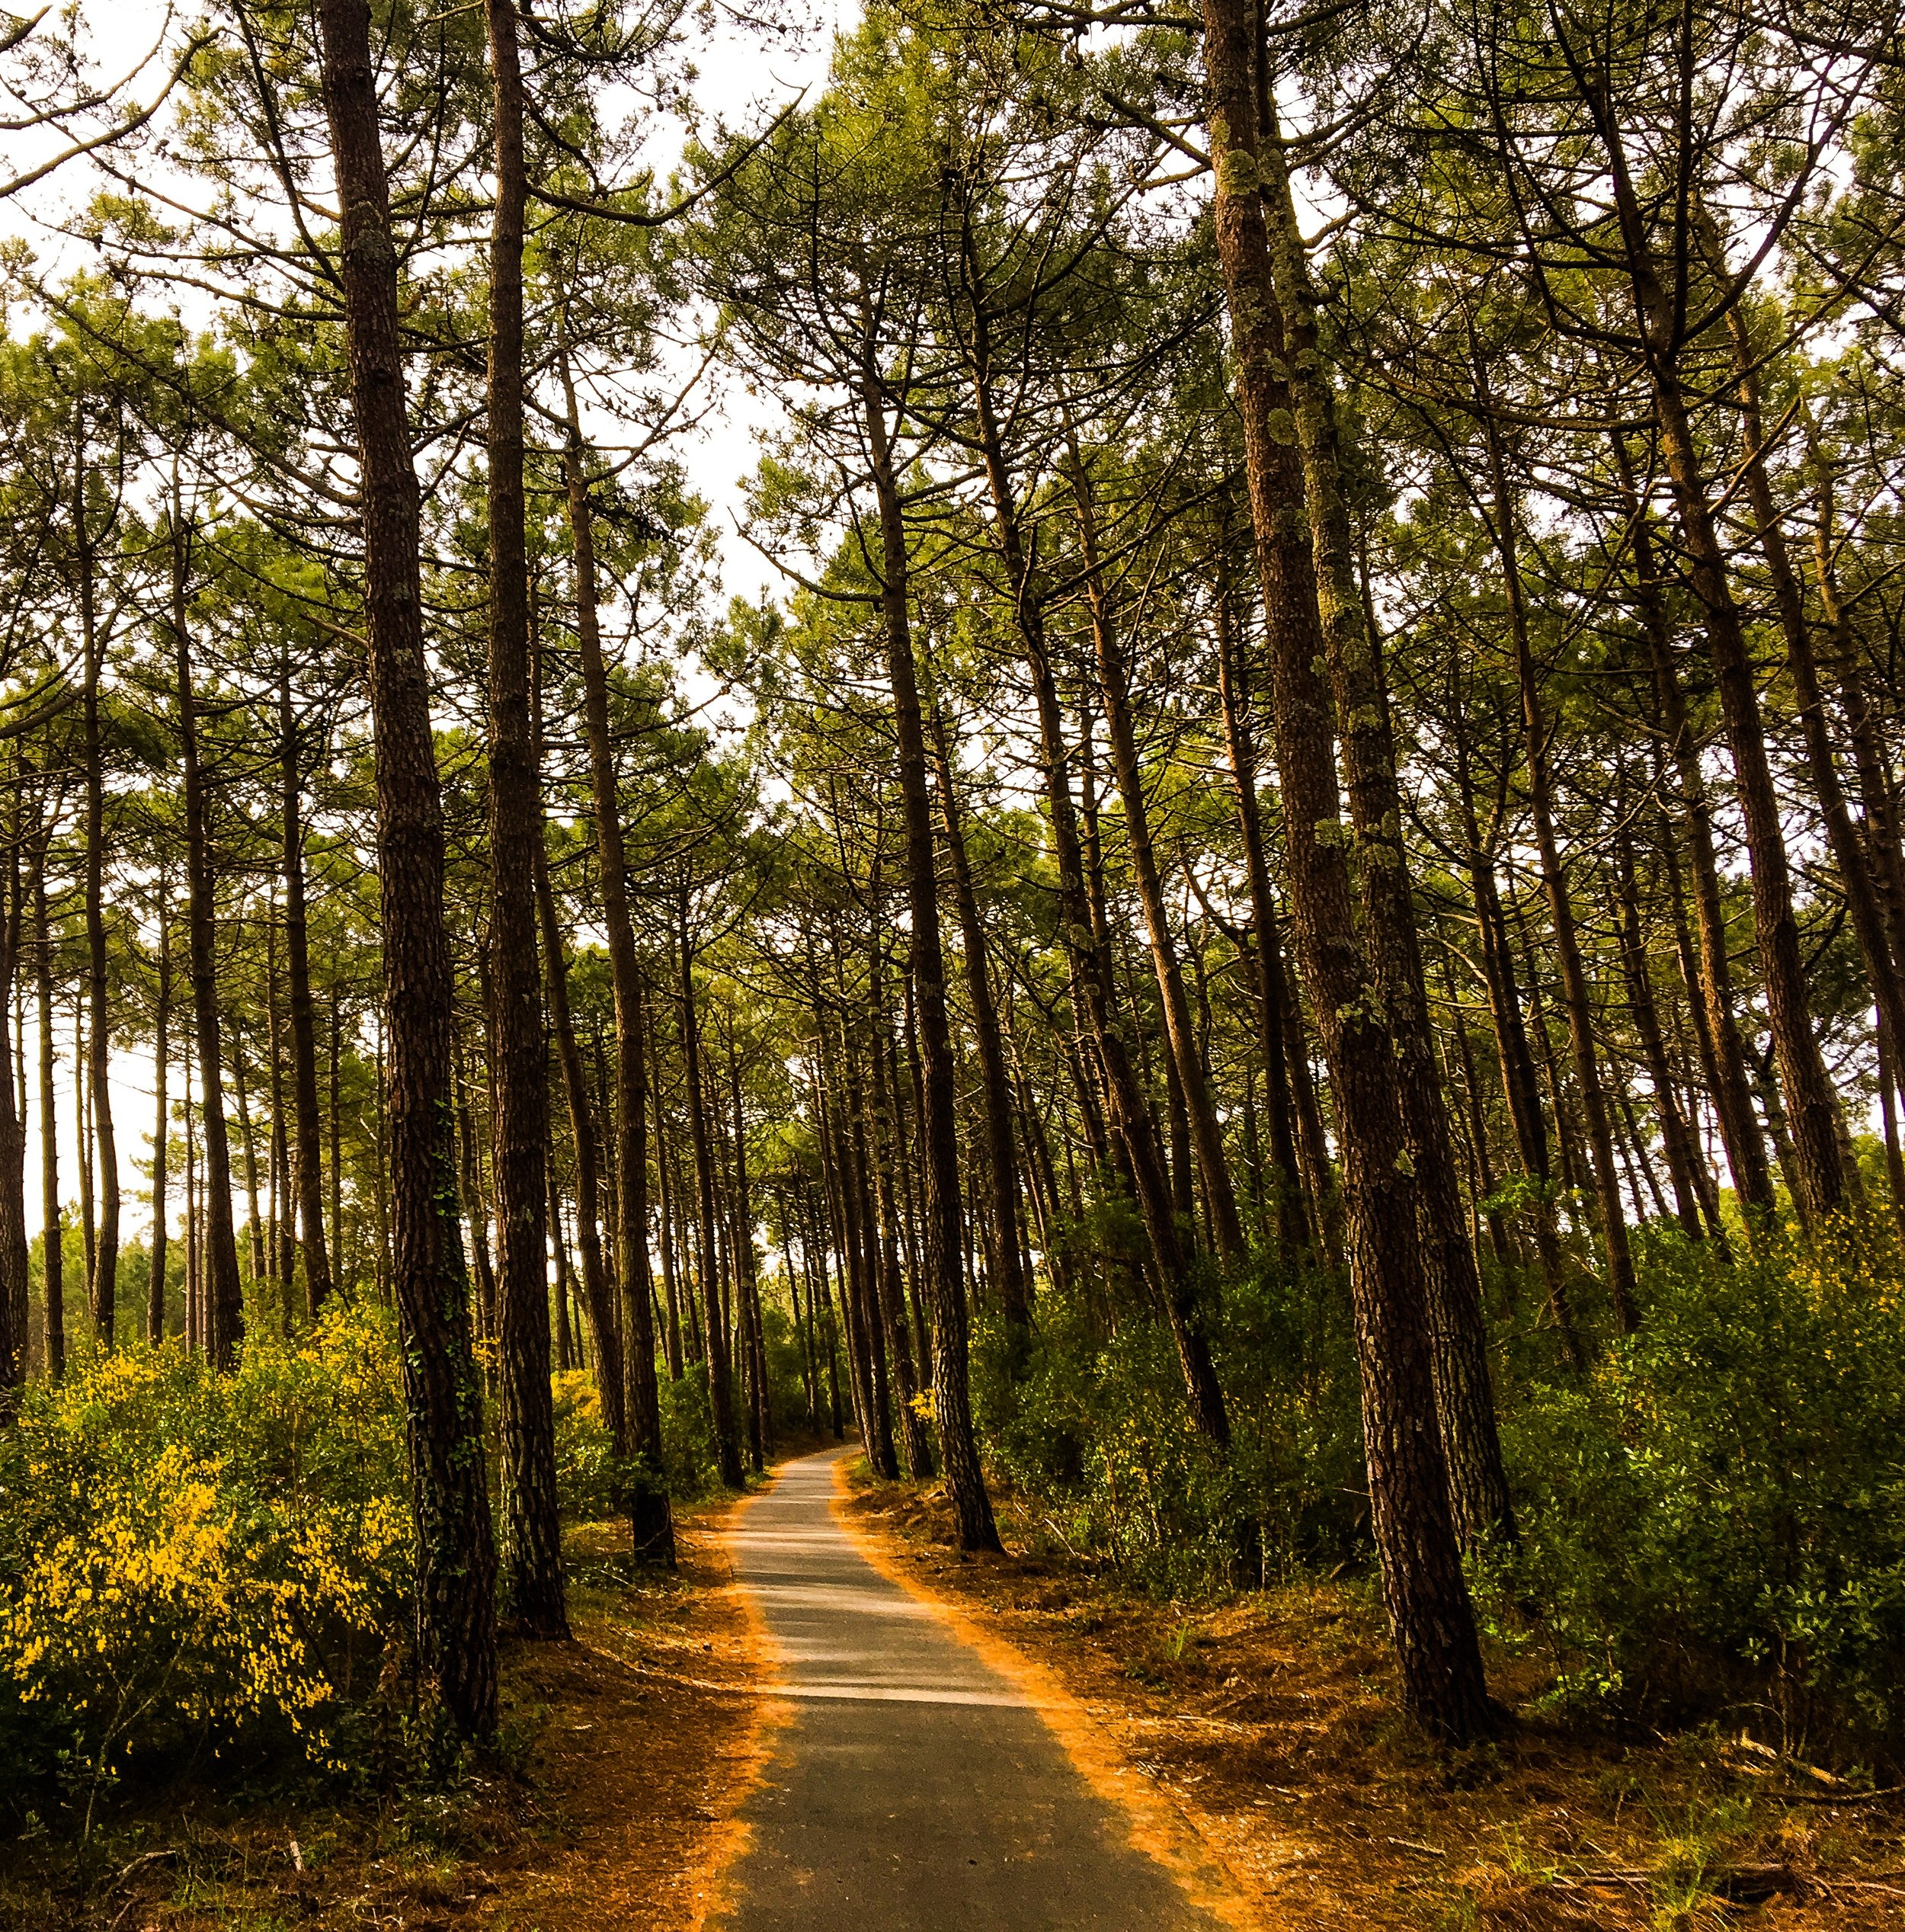 the Landes pine forest